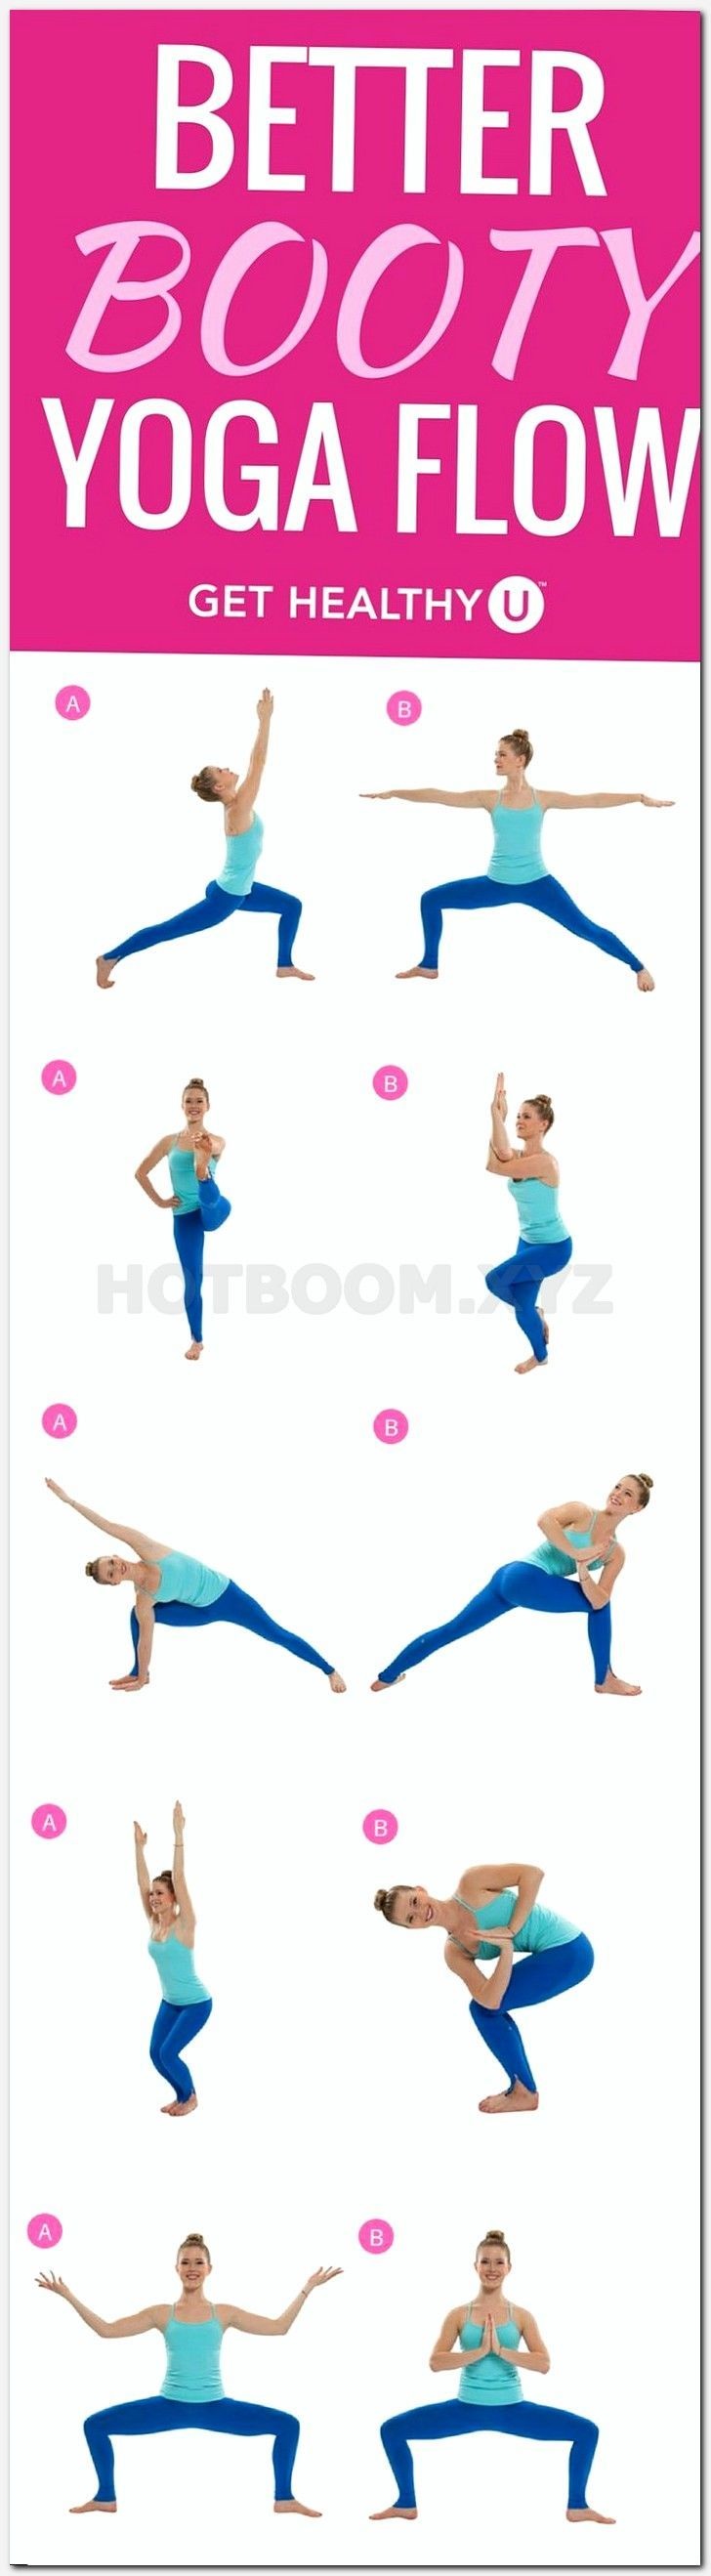 burning calories, red hot yoga, bikram yoga houston, asana pictures, how yoga works, bikram choudhury diet, weight loss experts, where to begin with yoga, yoga pregnancy first trimester, fastest way to lose belly fat, ramdev baba yoga for pregnant women, how much are yoga classes, best weight loss yoga poses, will yoga help in weight loss, how much spirulina per day,